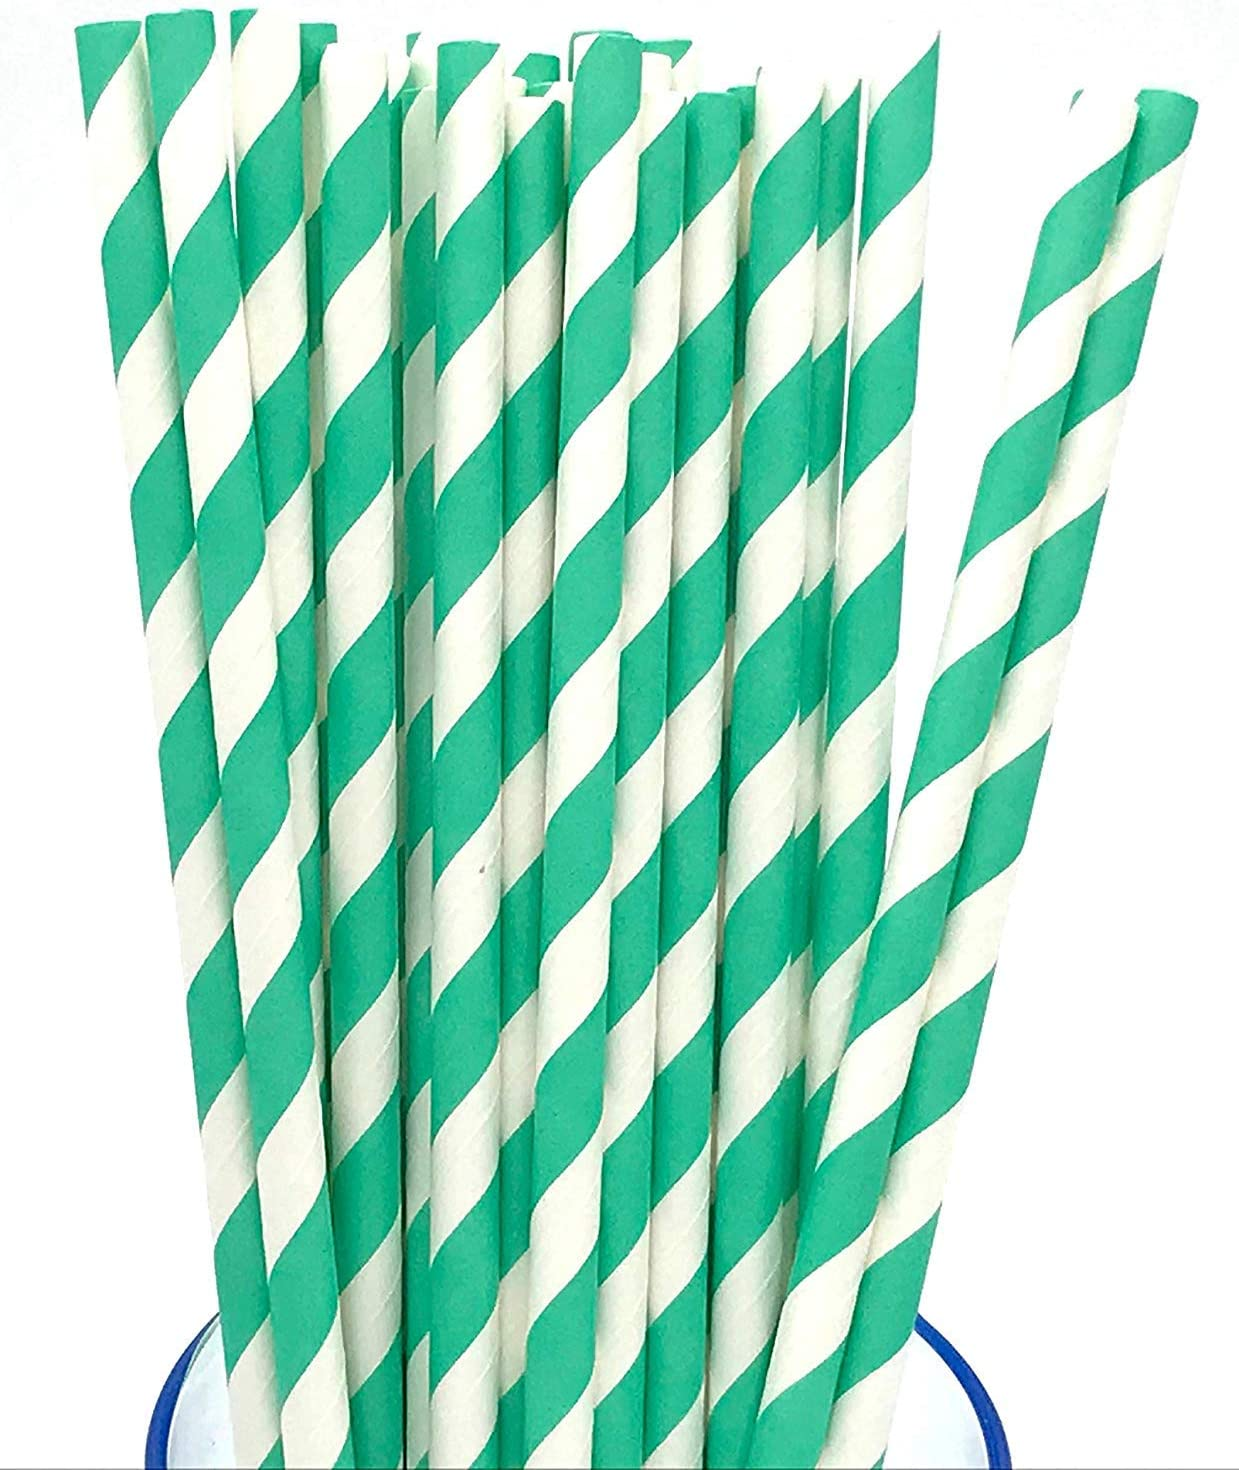 Party Photo Props Techrace Paper Straws Disposable Colorful Stripes Paper Drinking Straws for Birthday Christmas Baby Shower,50 Pack Celebration Parties Wedding